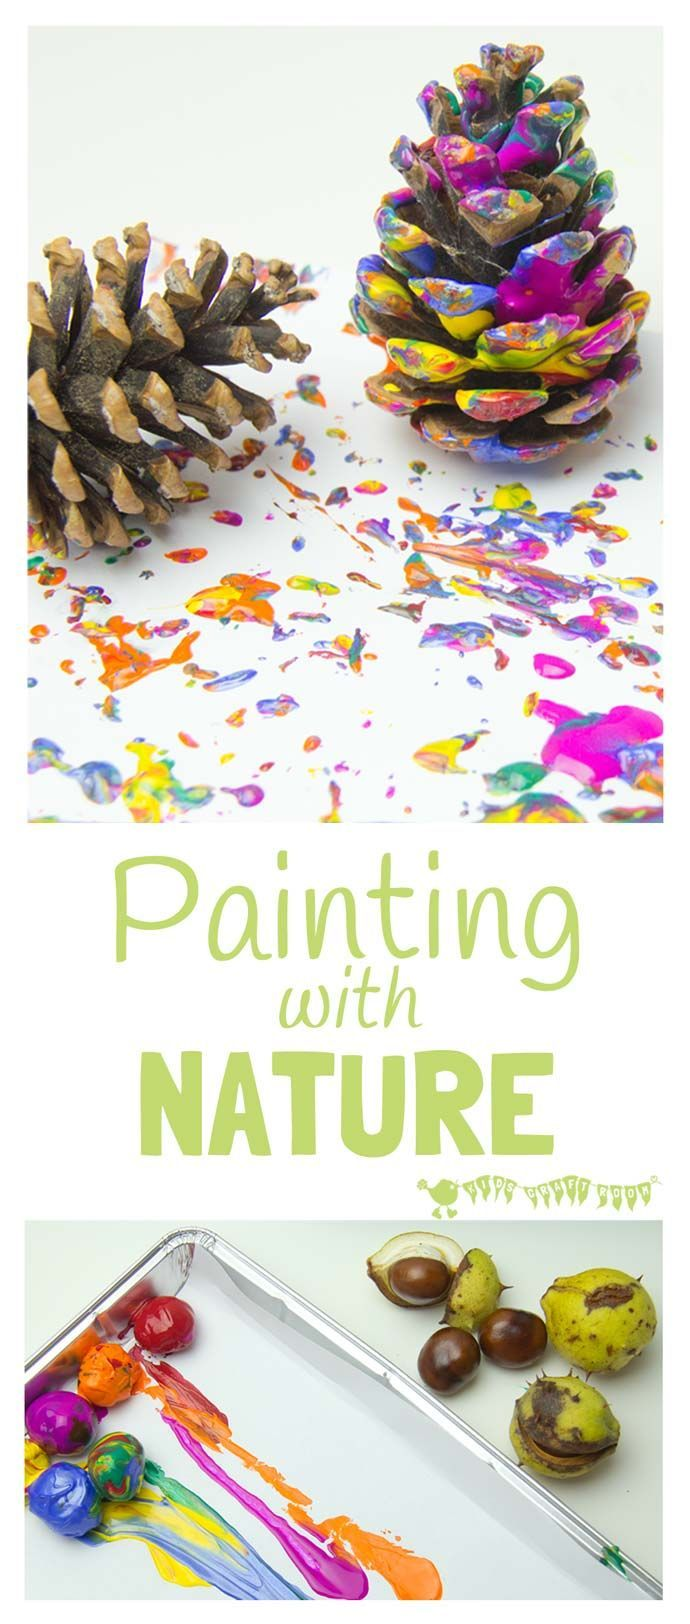 Autumn painting with nature is an exciting process art technique for kids that explores textures and patterns in a fun and open-ended way.